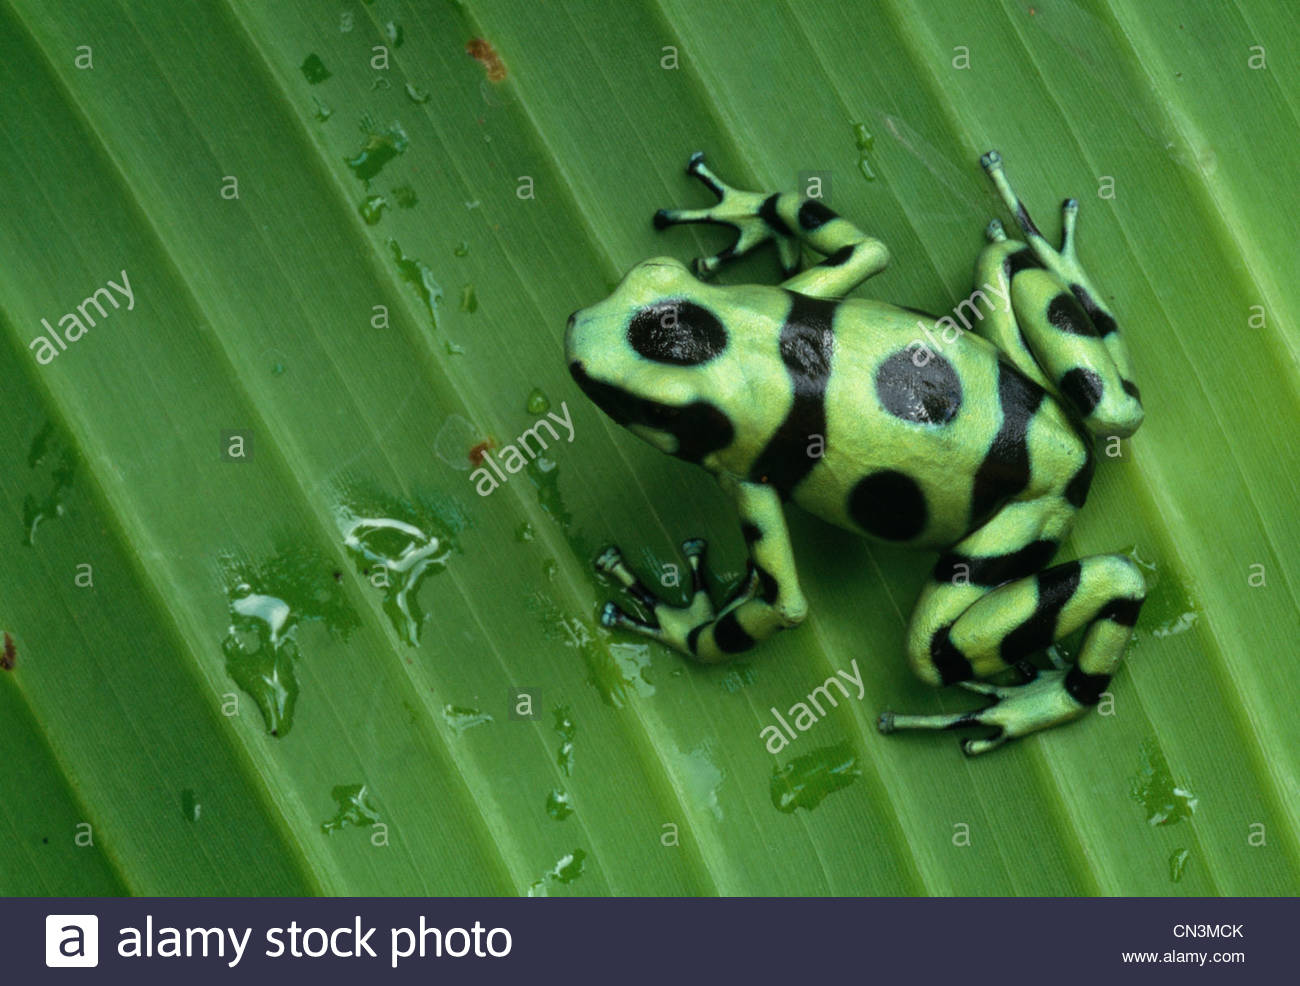 reen and Black Poison Arrow Frog sits on a leaf, Panama. - Stock Image